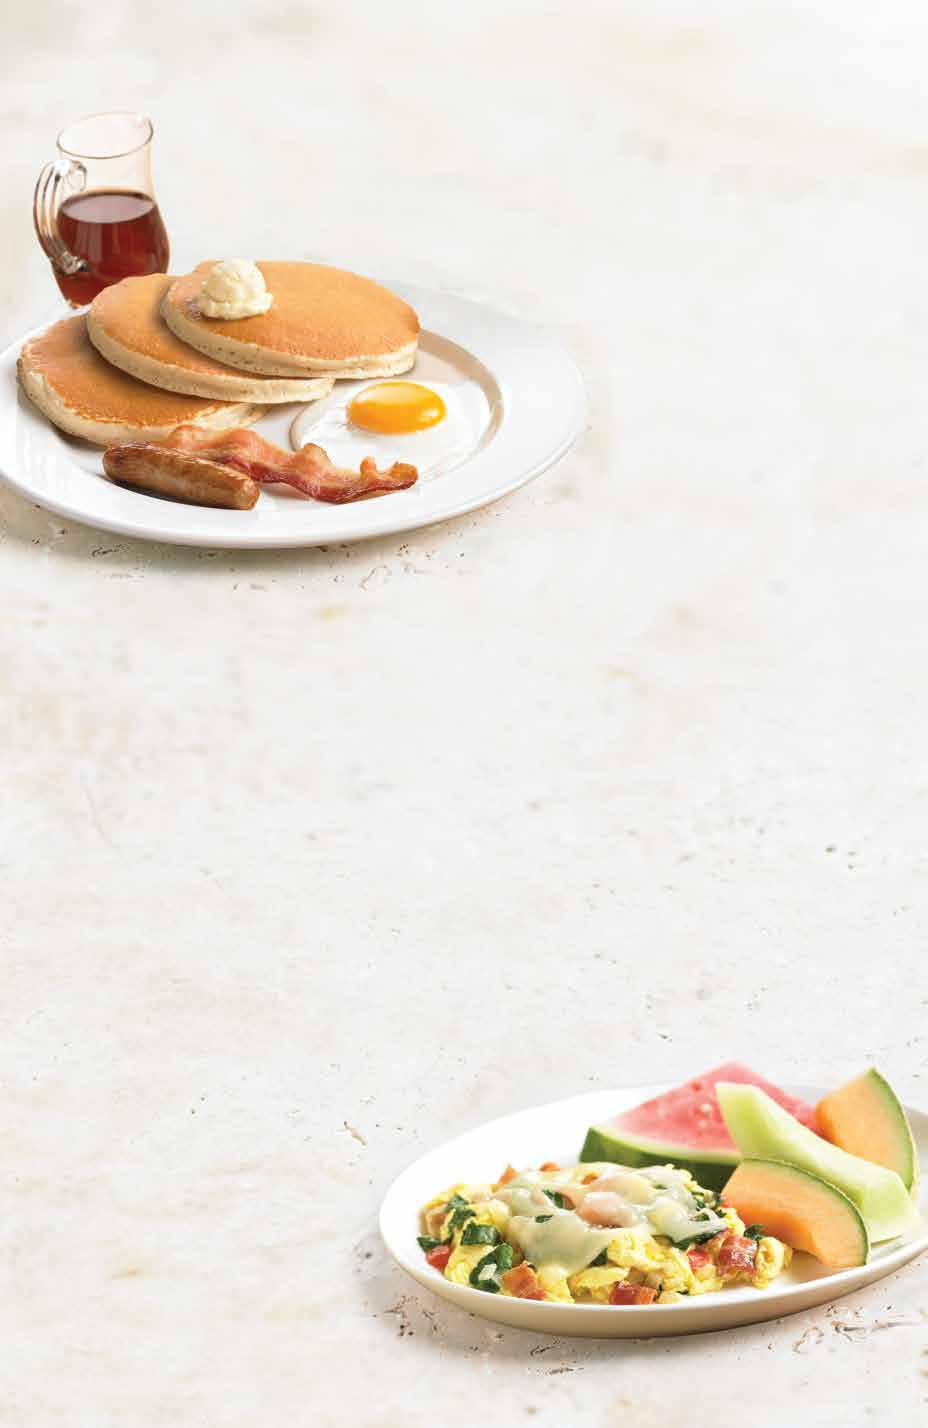 CLUB 55 BREAKFAST Affordable, High Quality Breakfast & Healthier Options for our Guests 55 and Above.* * Please no coupons with Club 55.